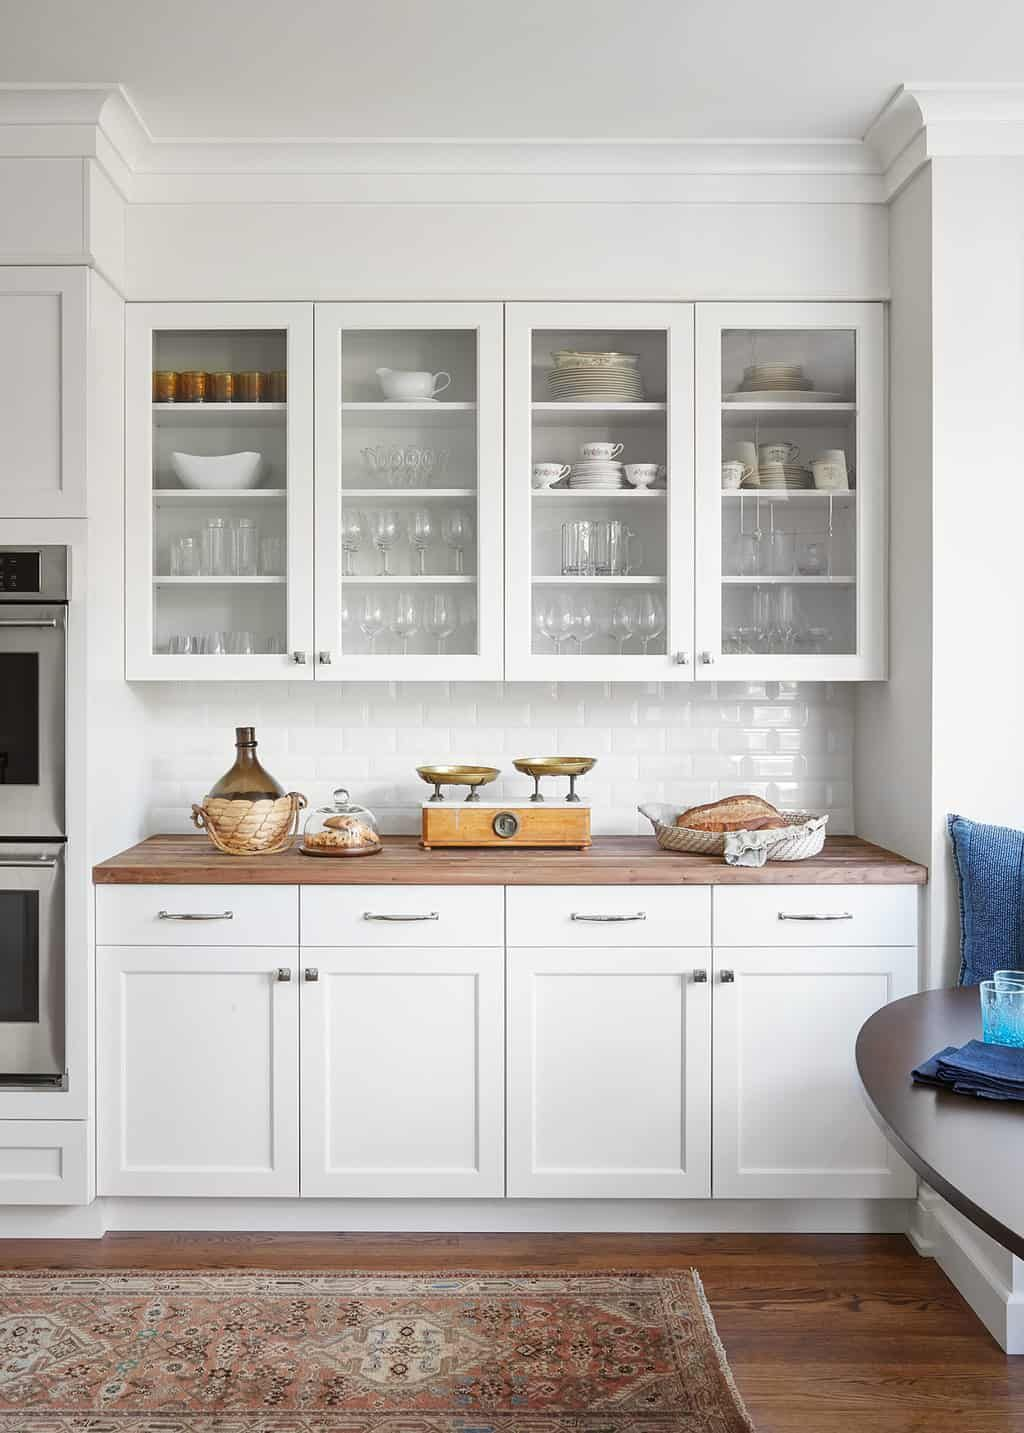 Modern White Kitchen Reveal Featured By Monogram Appliances White Modern Kitchen Glass Fronted Kitchen Cabinets White Kitchen Design